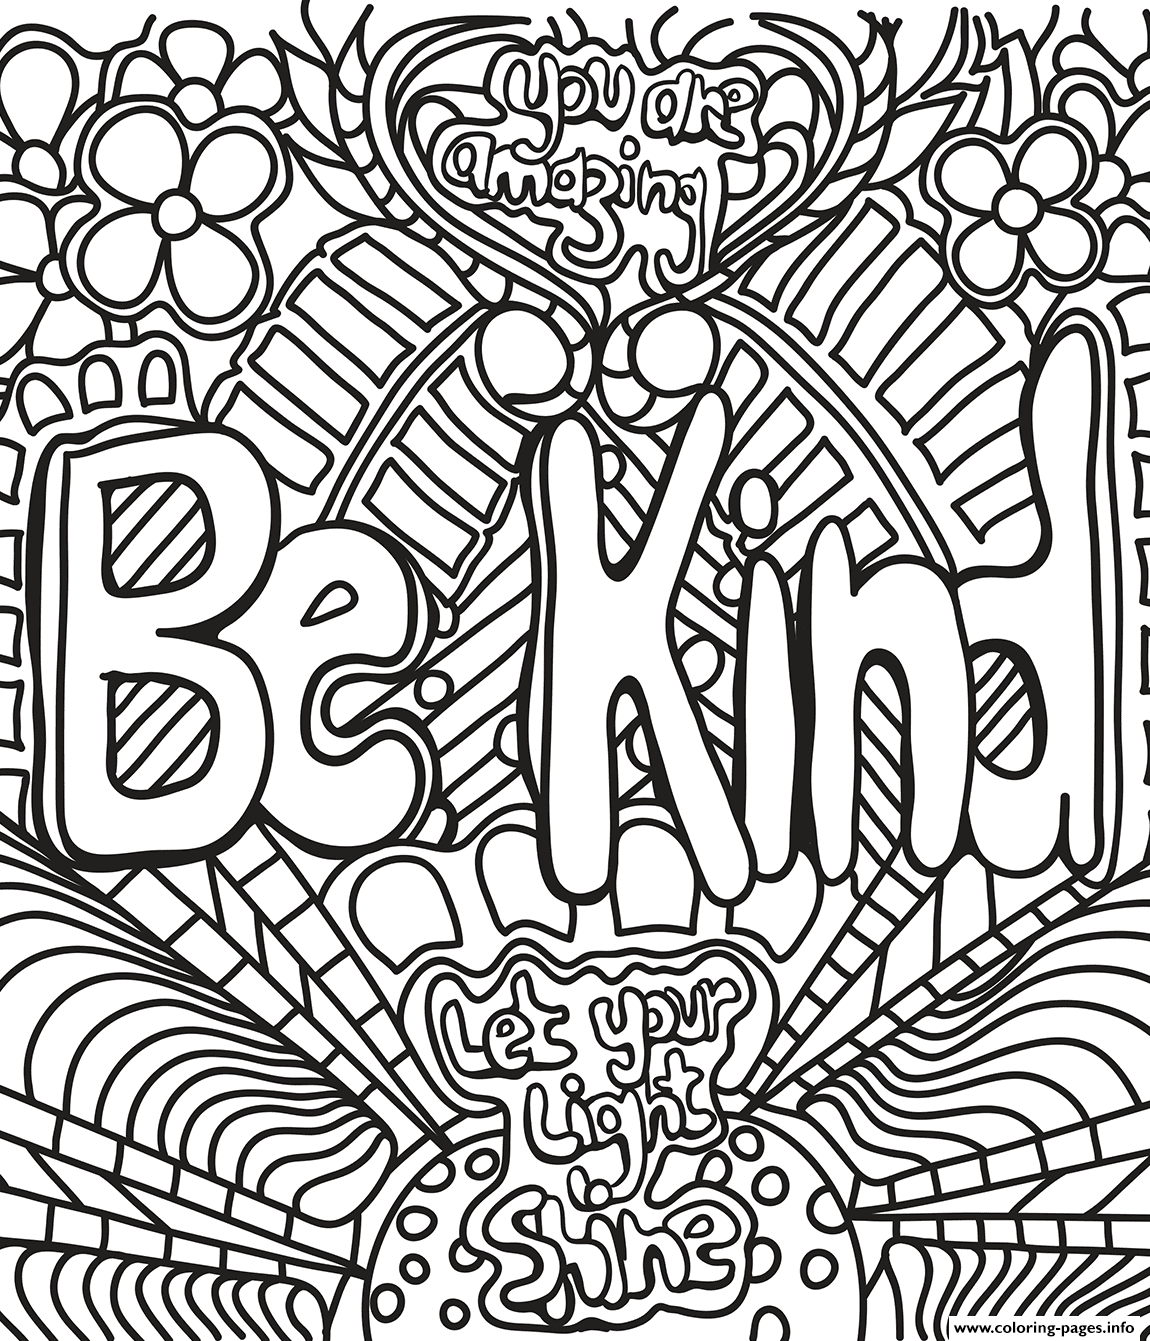 Be Kind Coloring Pages - Coloring Home